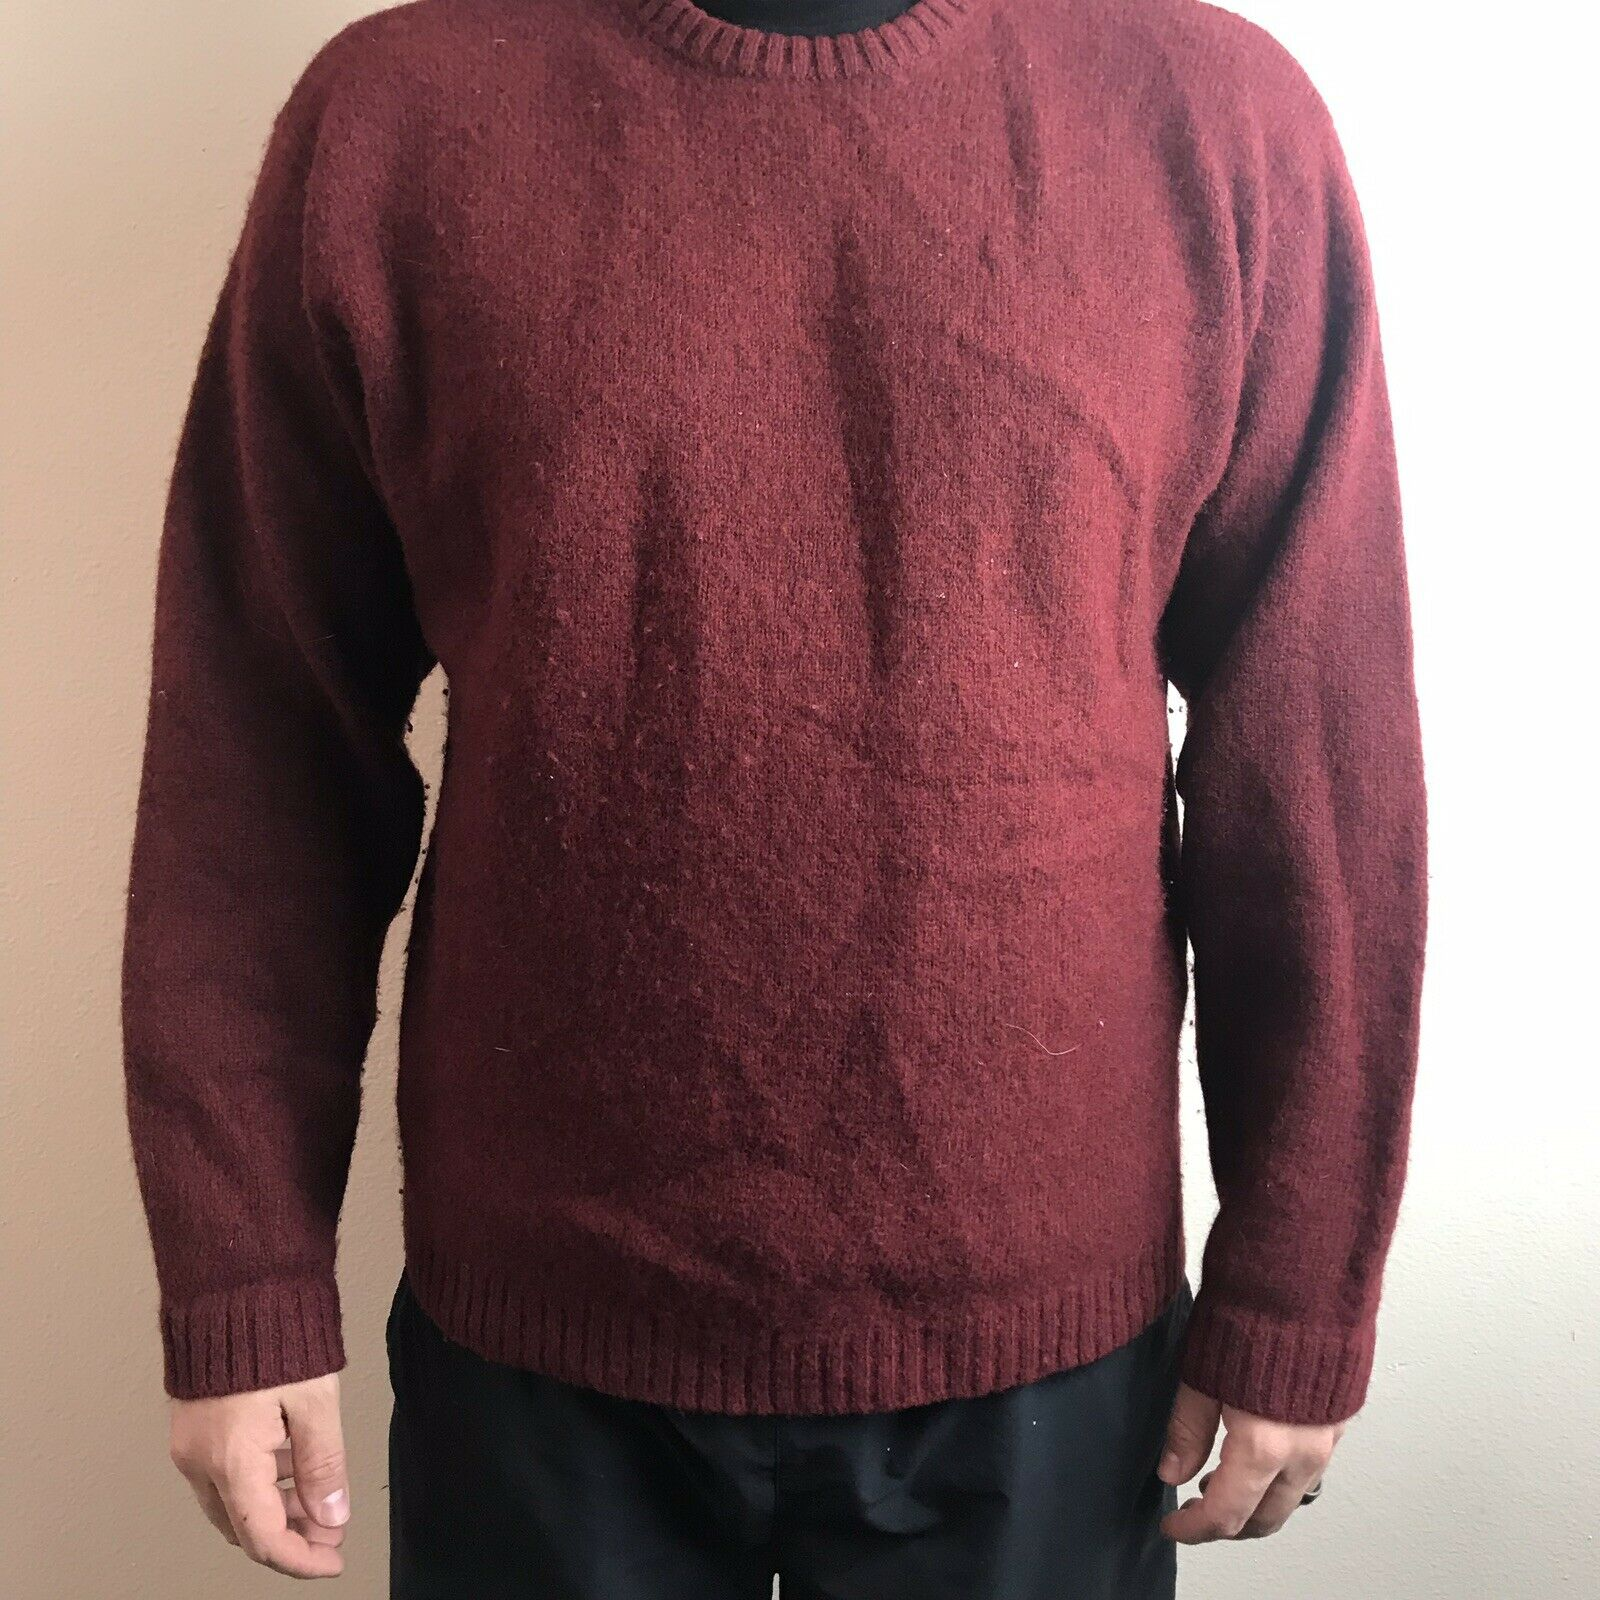 J. Crew Men's Vintage 100% Wool red Winter Sweater Size Large